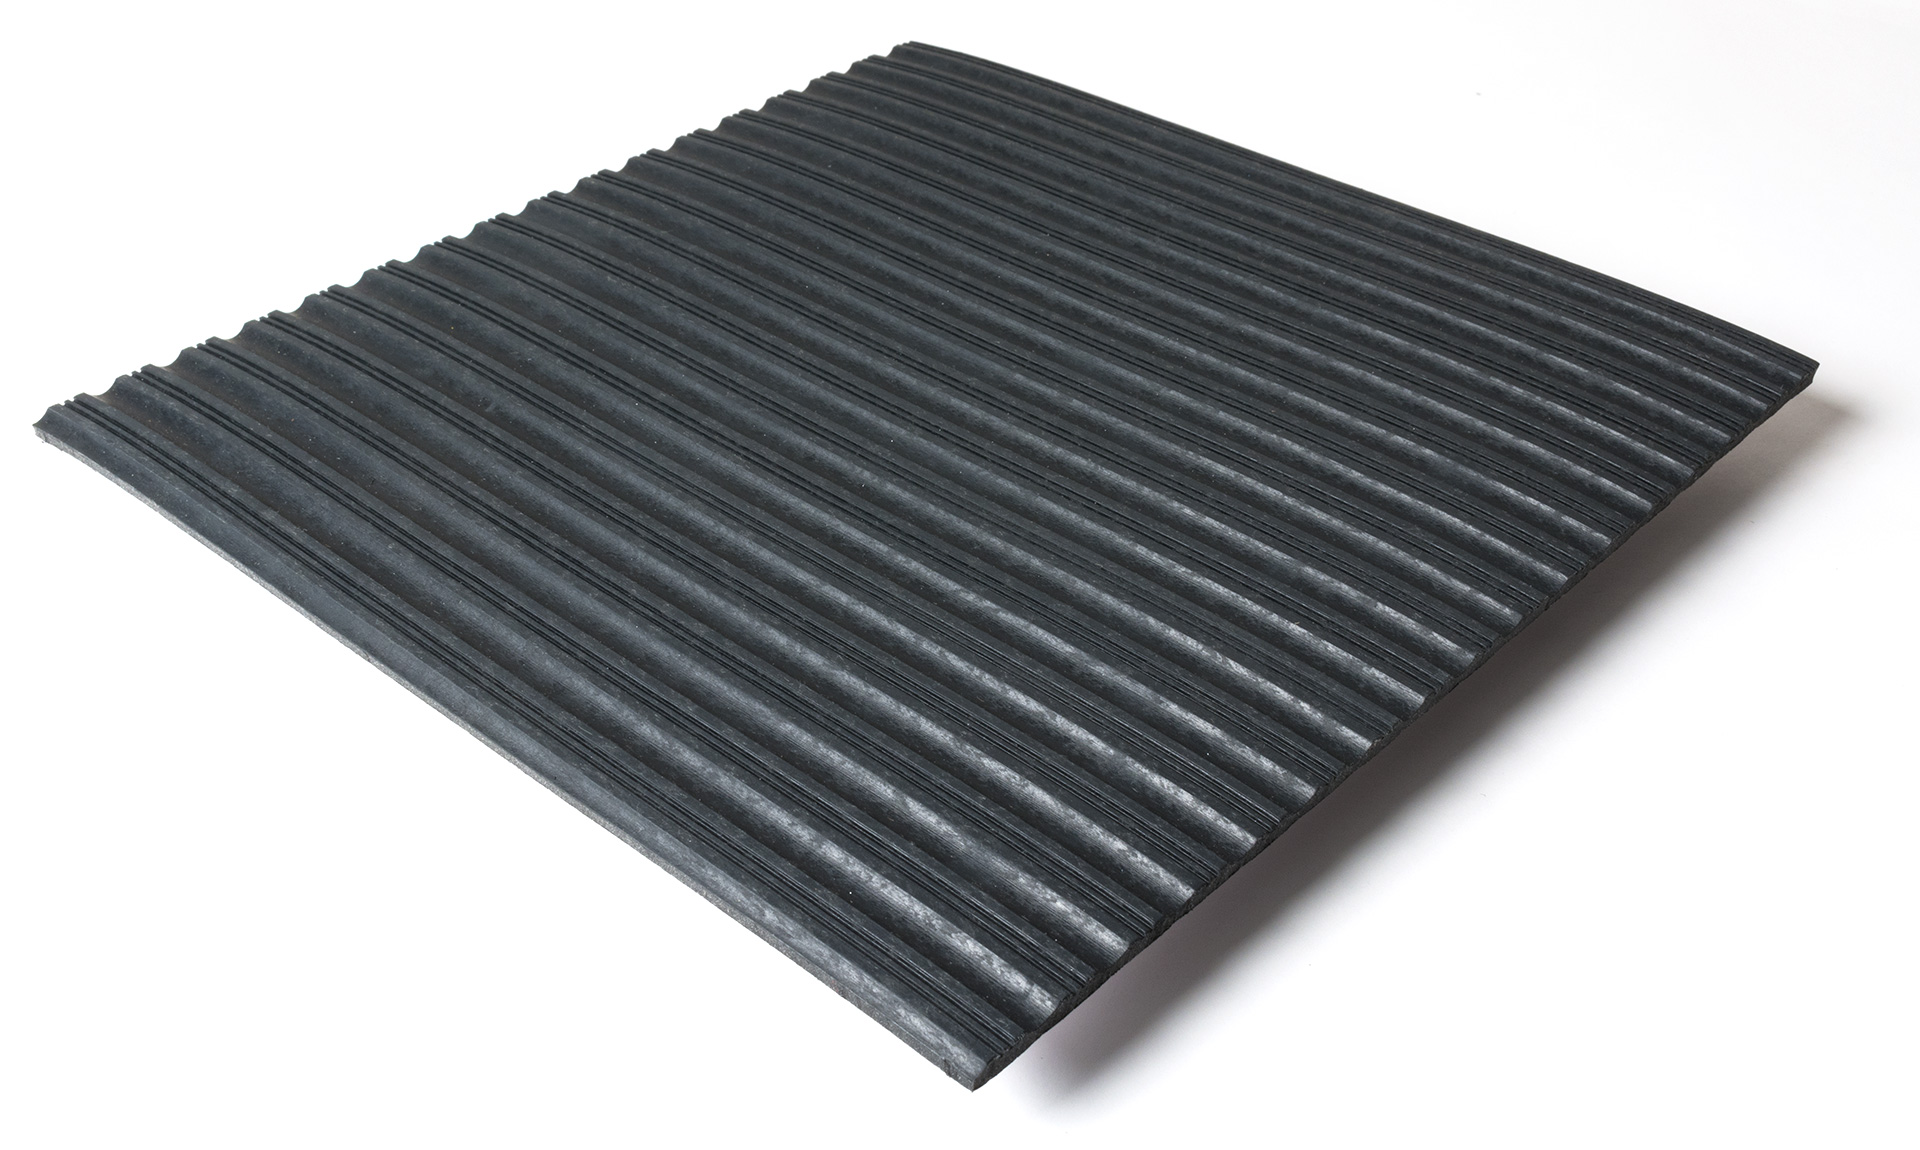 Standard transit flooring in black, ribbed